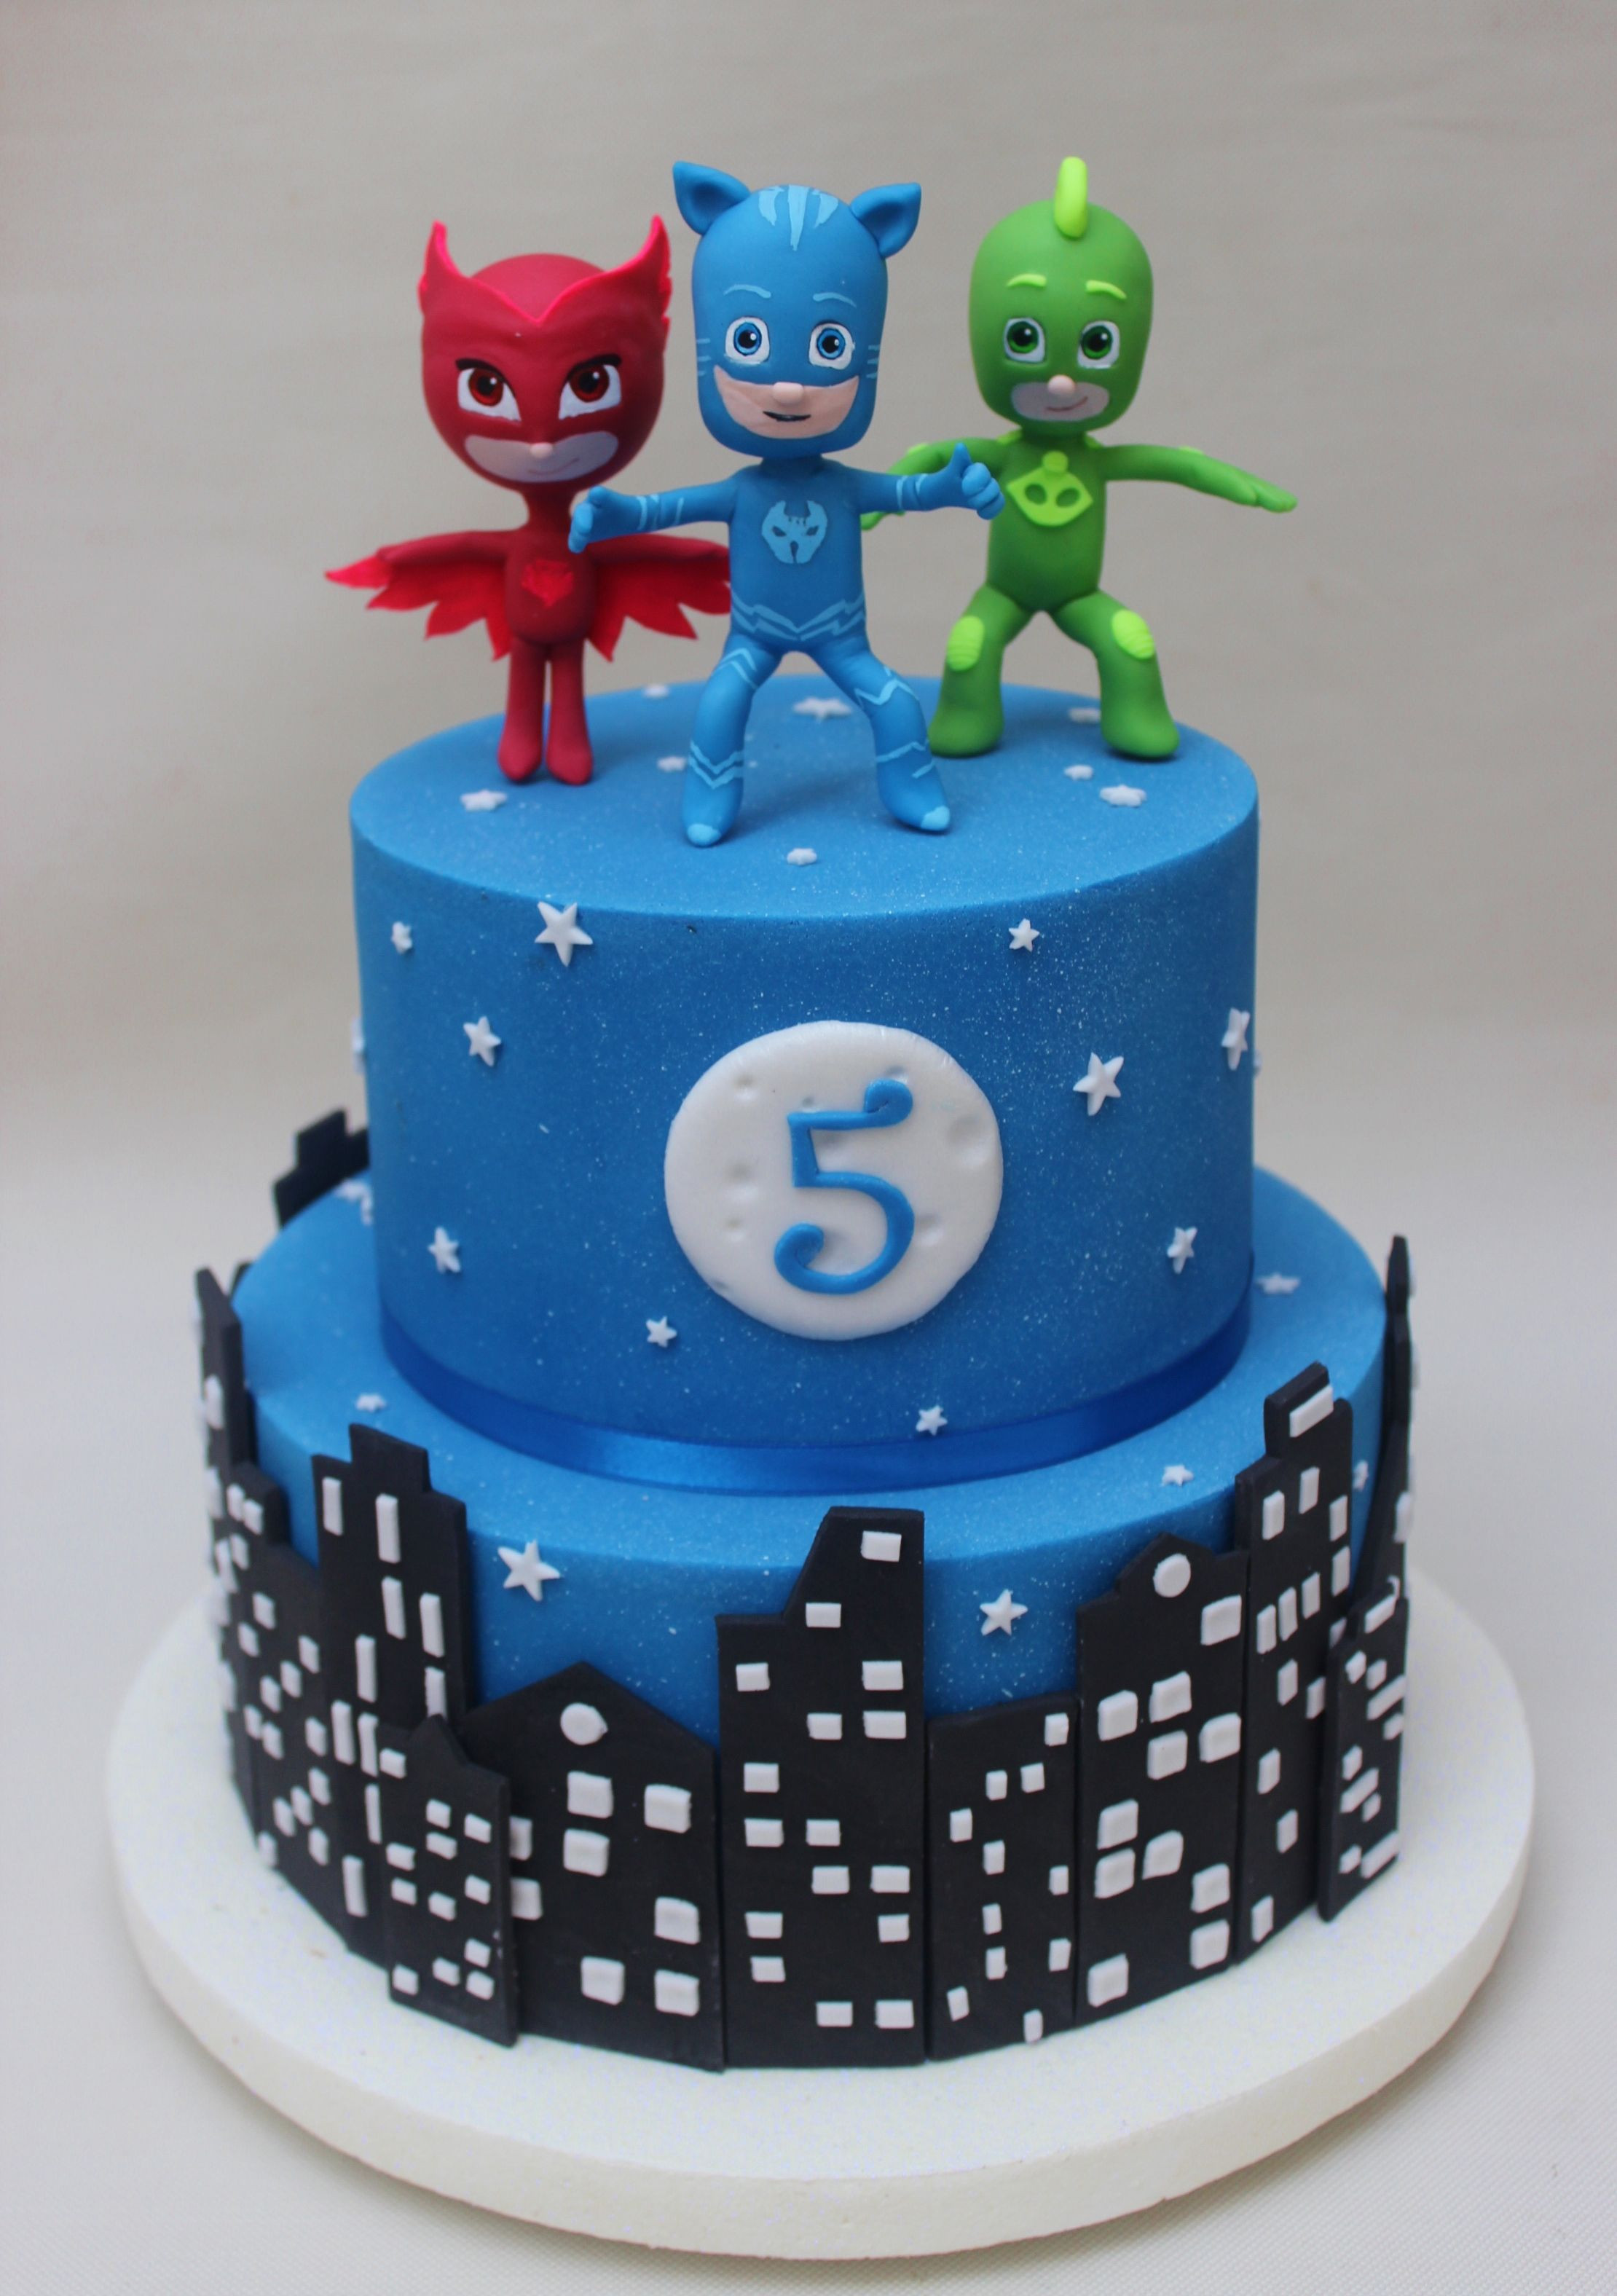 Best ideas about Pj Masks Birthday Cake Ideas . Save or Pin PJ Mask Cake Violeta Glace Birthdays Cakes Now.